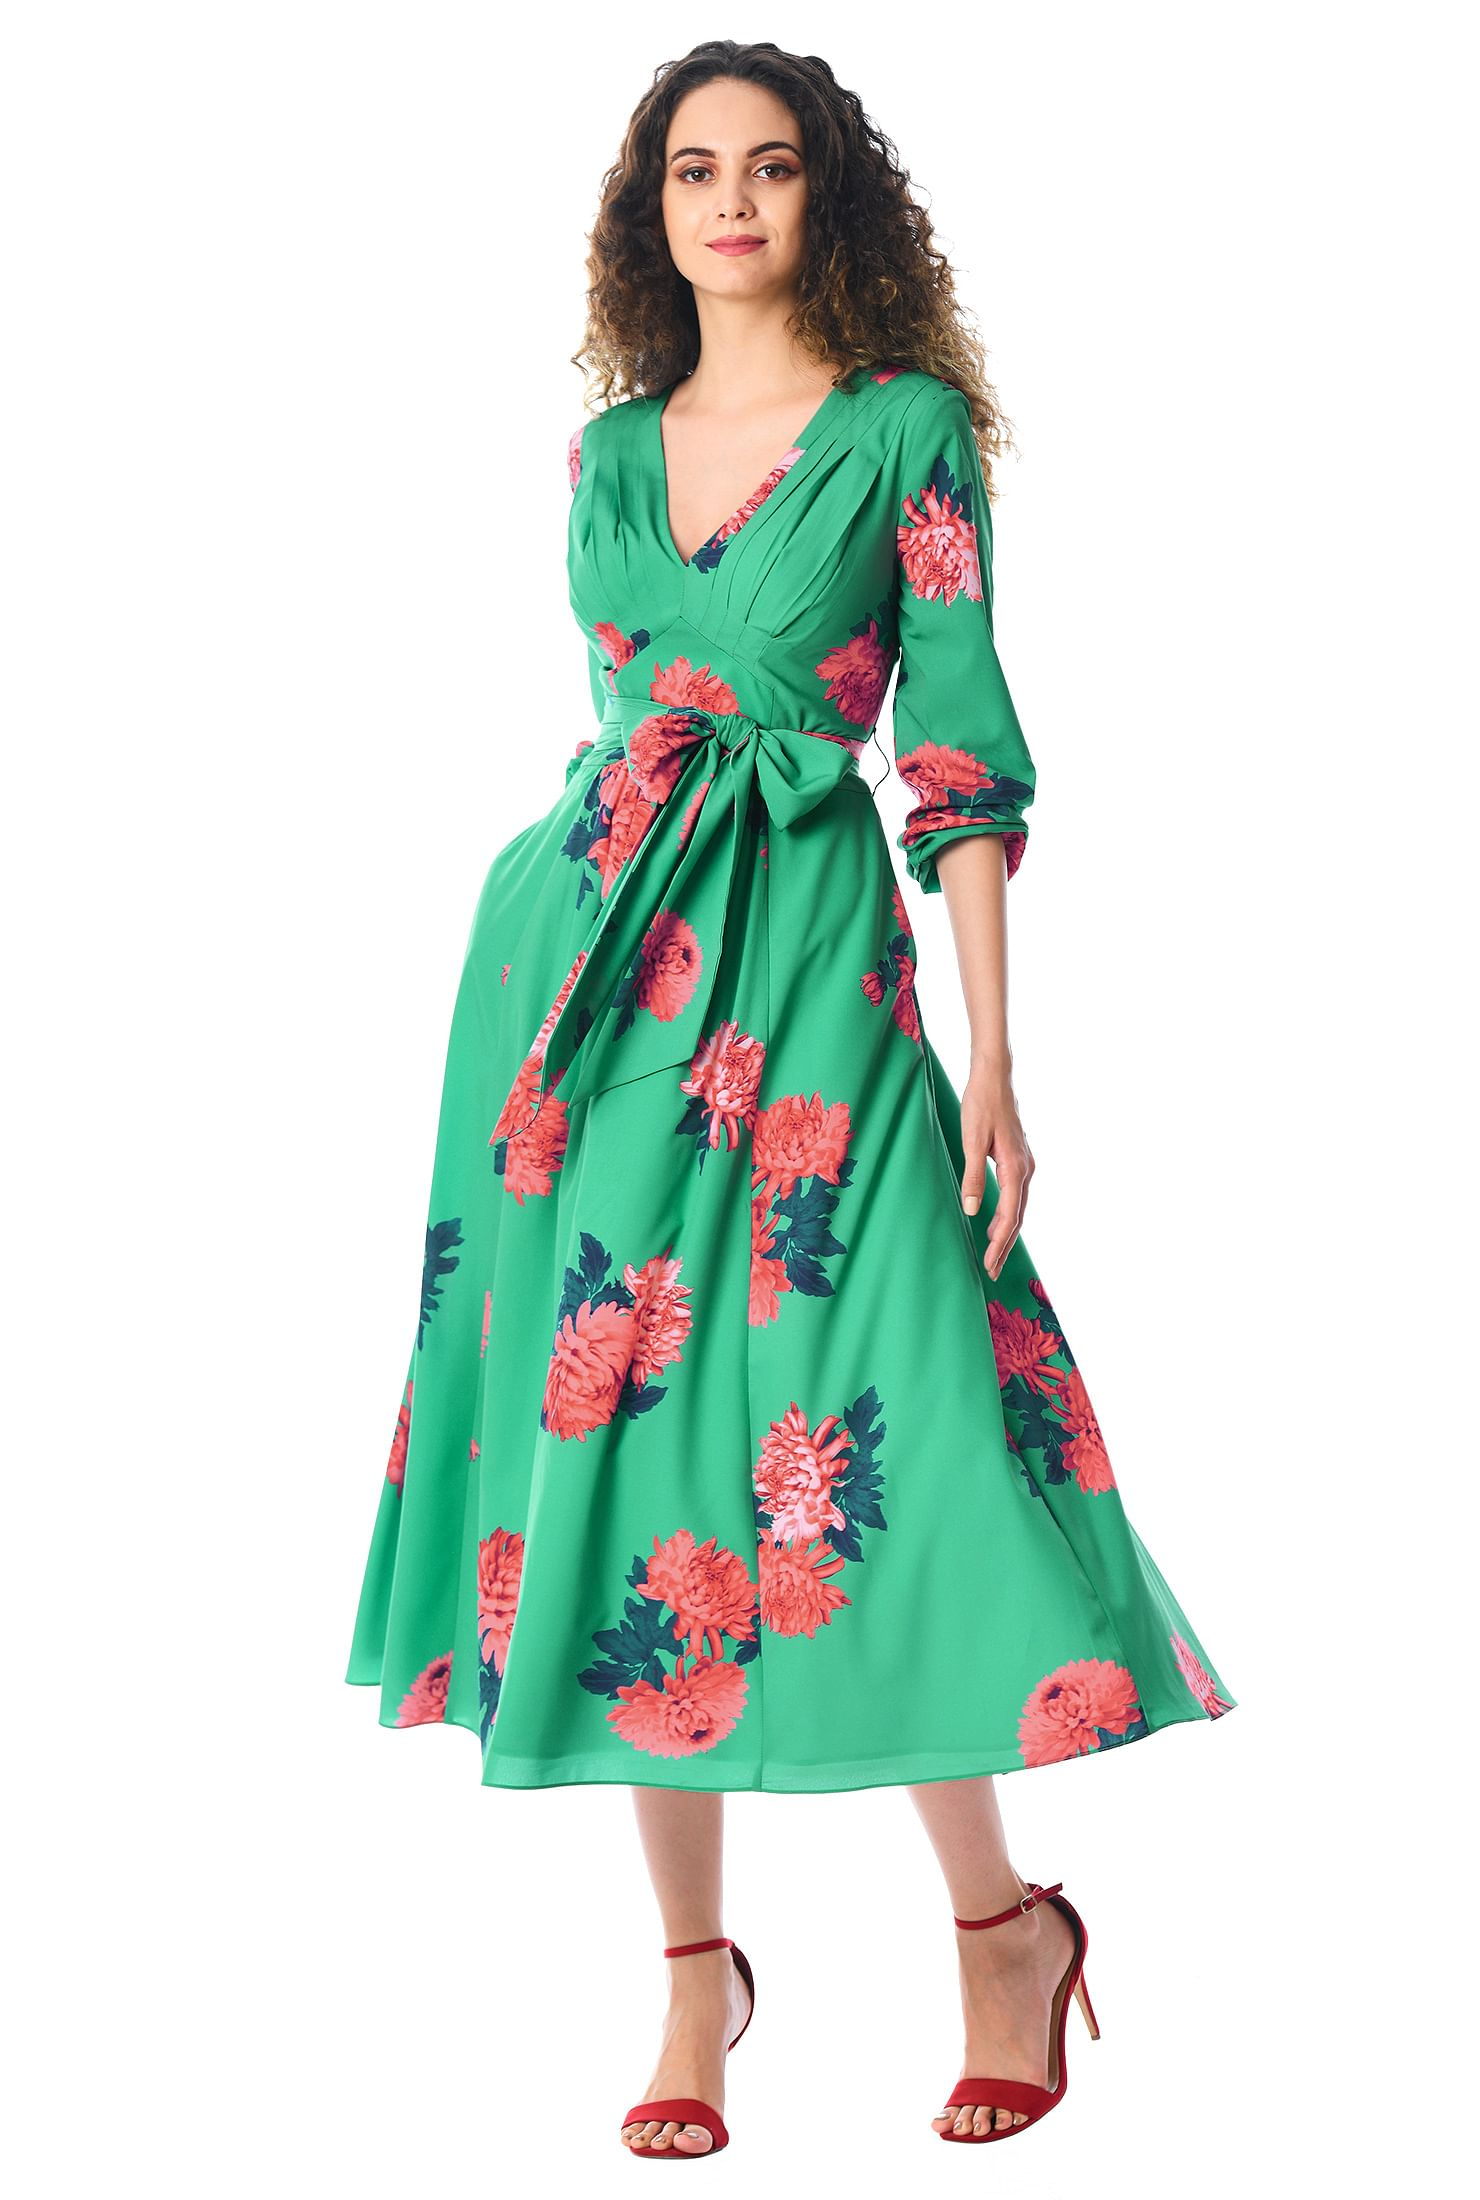 8446298f90 ... Pleated floral print crepe midi dress. Out of Stock. , above ankle  length dresses, back zip dresses, blouson sleeve dresses, empire waist